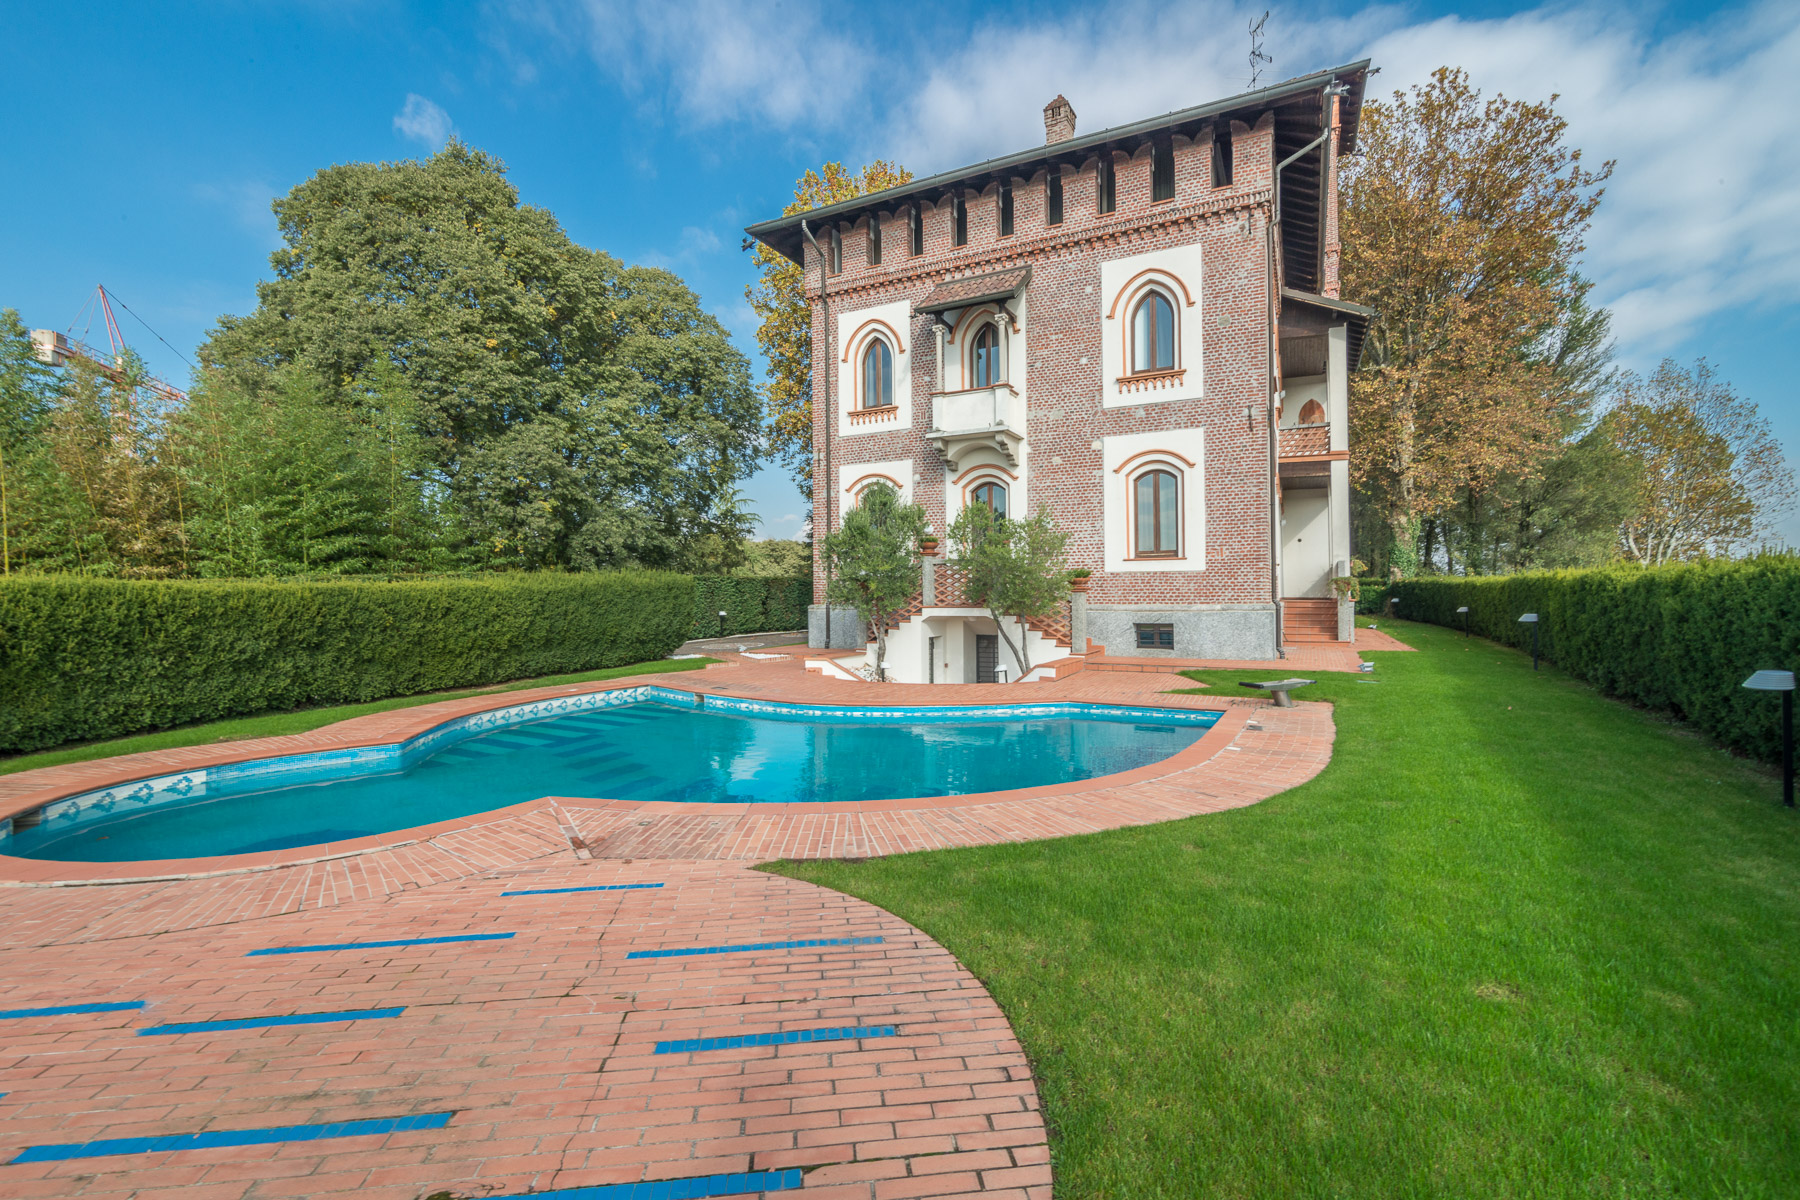 Single Family Home for Sale at Prestigious historical villa close to Milan Via Friuli Cesano Maderno, Monza Brianza 20811 Italy